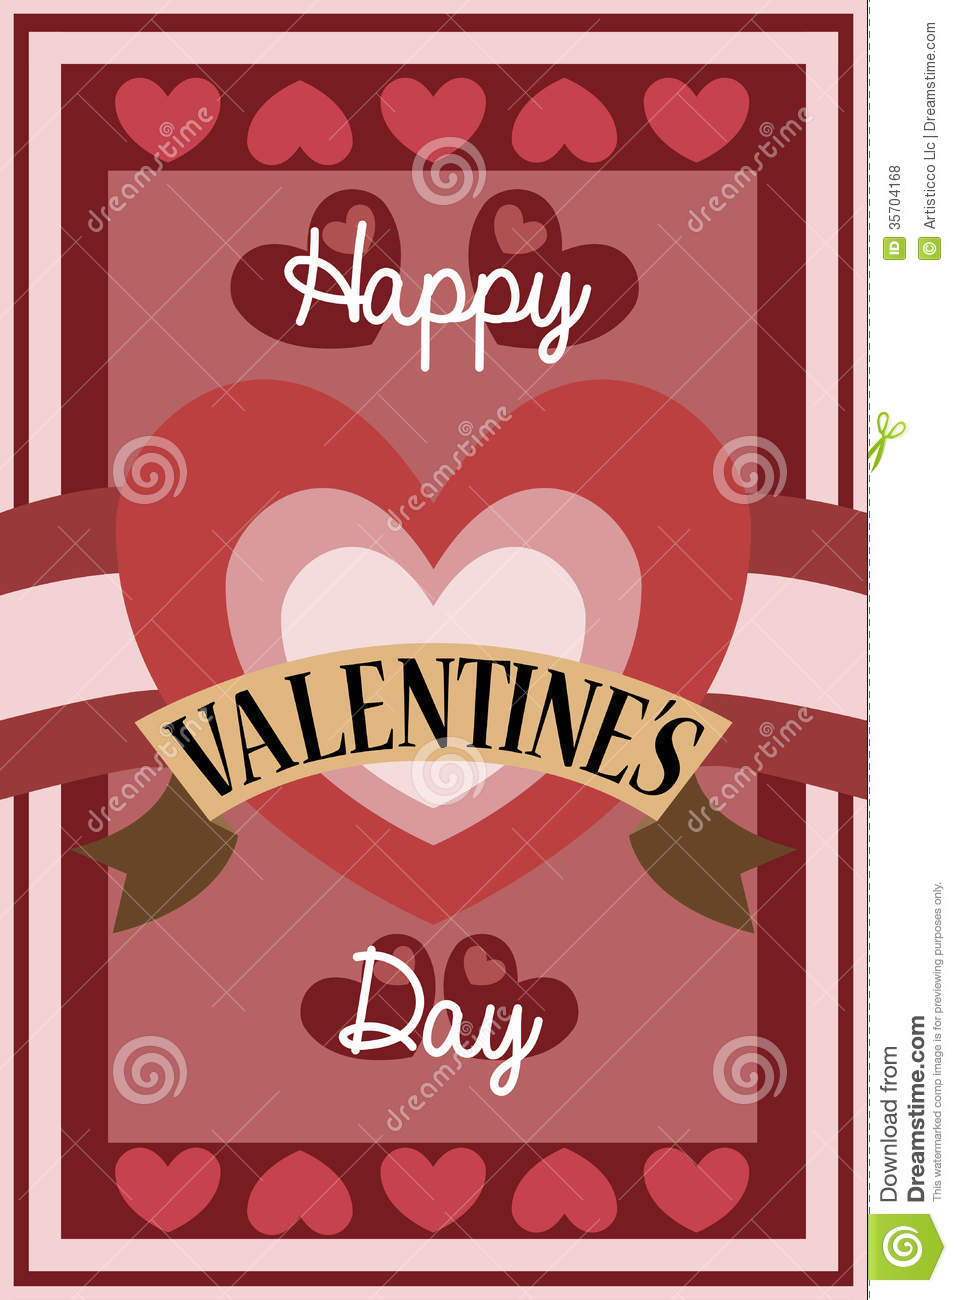 Retro valentine card design stock vector image 35704168 for Designs for valentine cards